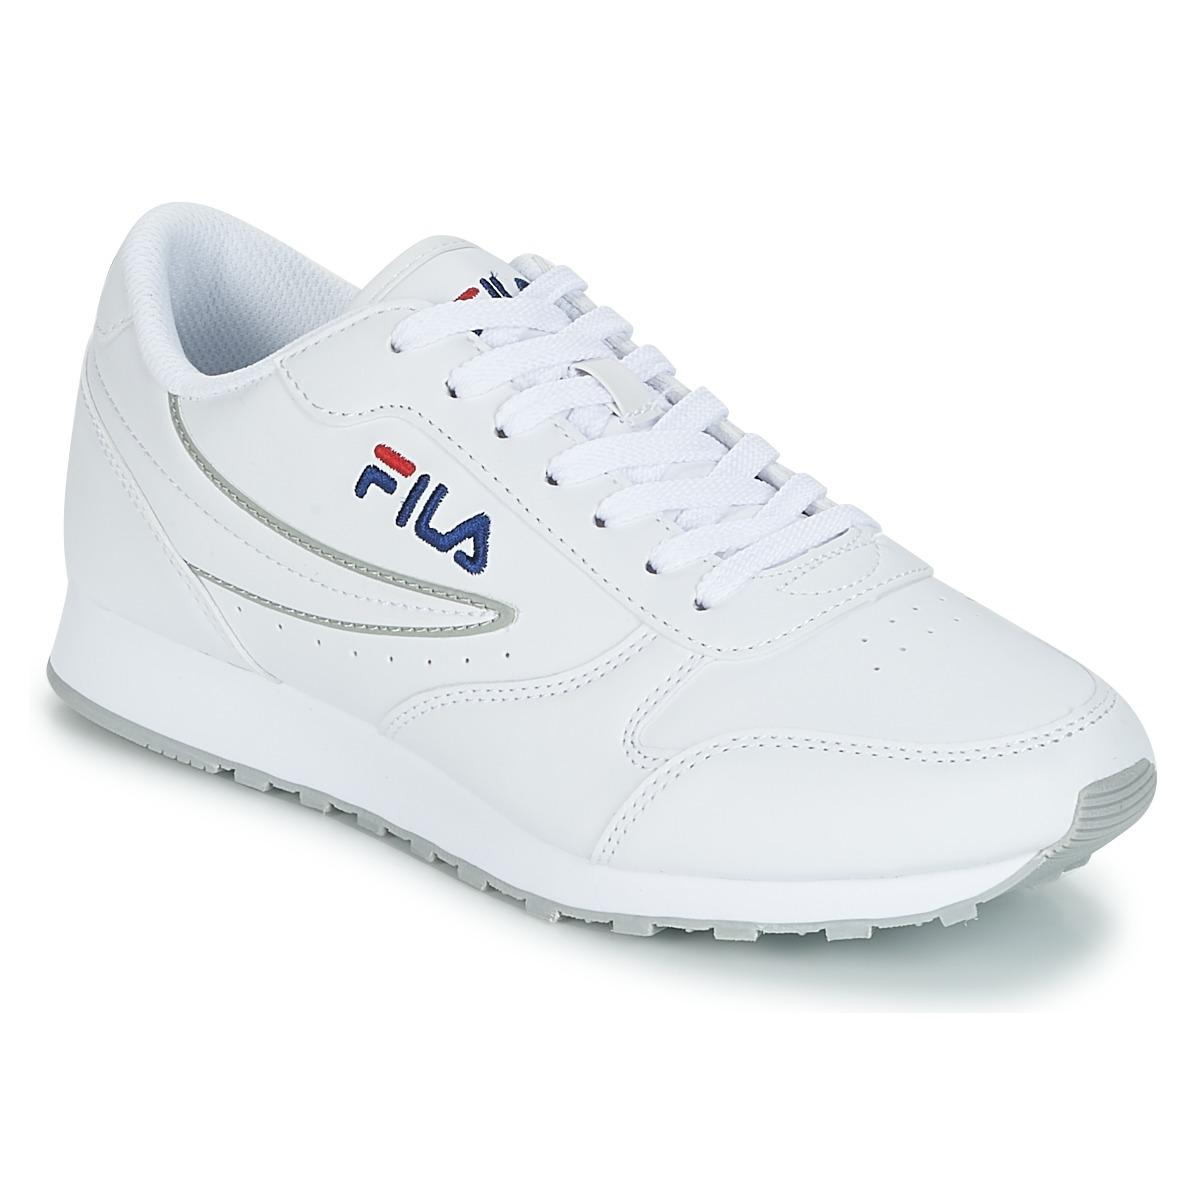 b82b84468c7 Fila Orbit Low Wmn Shoes (trainers) in White - Save 24% - Lyst